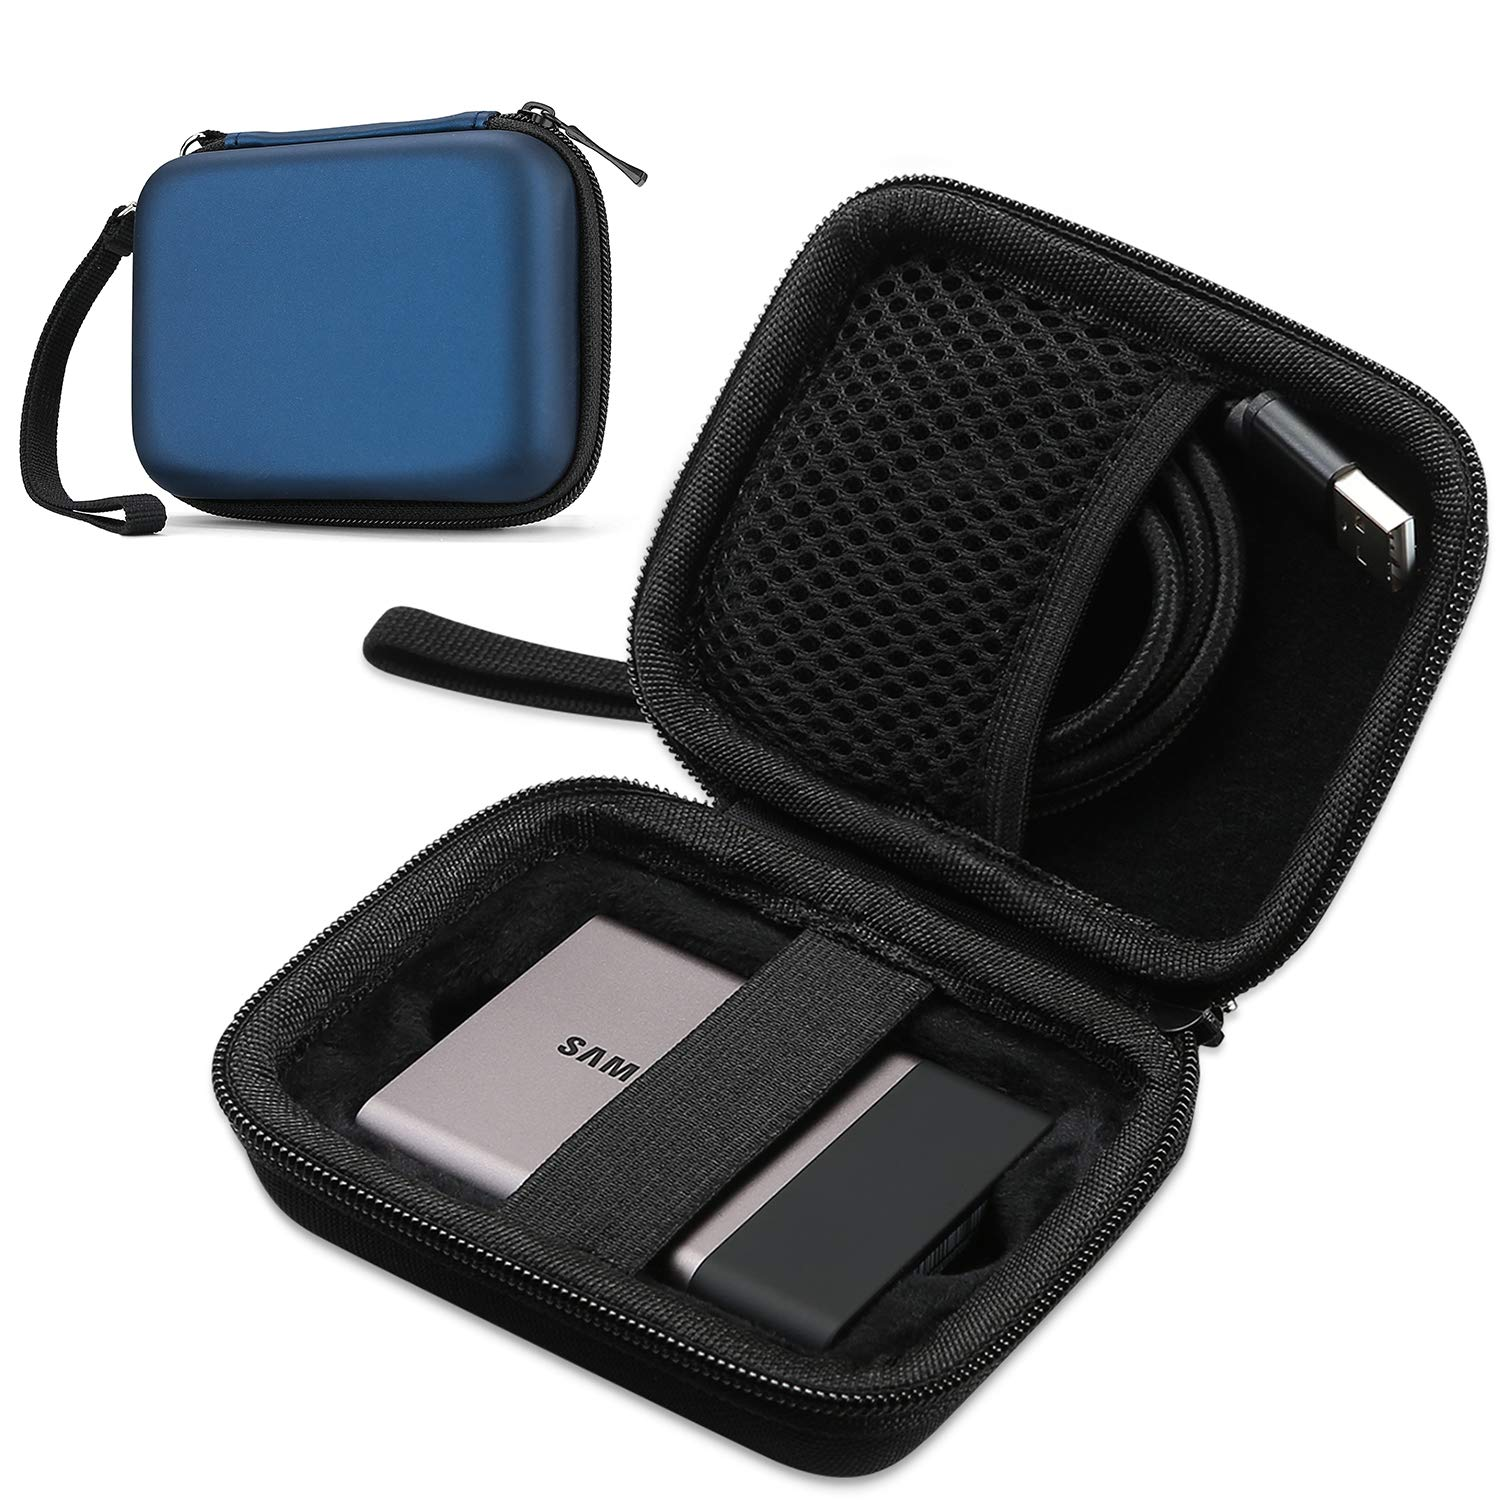 Travel Carrying Case for Samsung T5 T3 SSD | ProCase